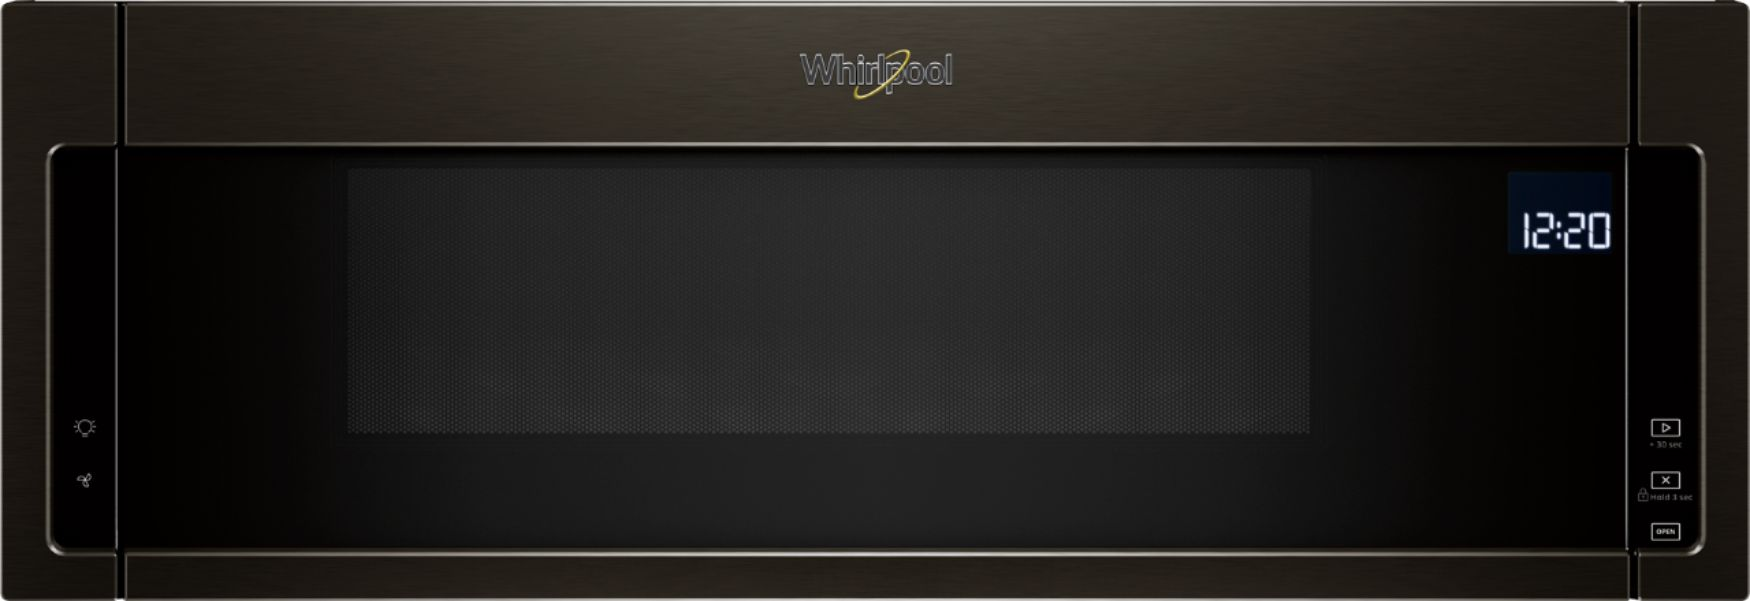 whirlpool 1 1 cu ft low profile over the range microwave hood combination black stainless steel